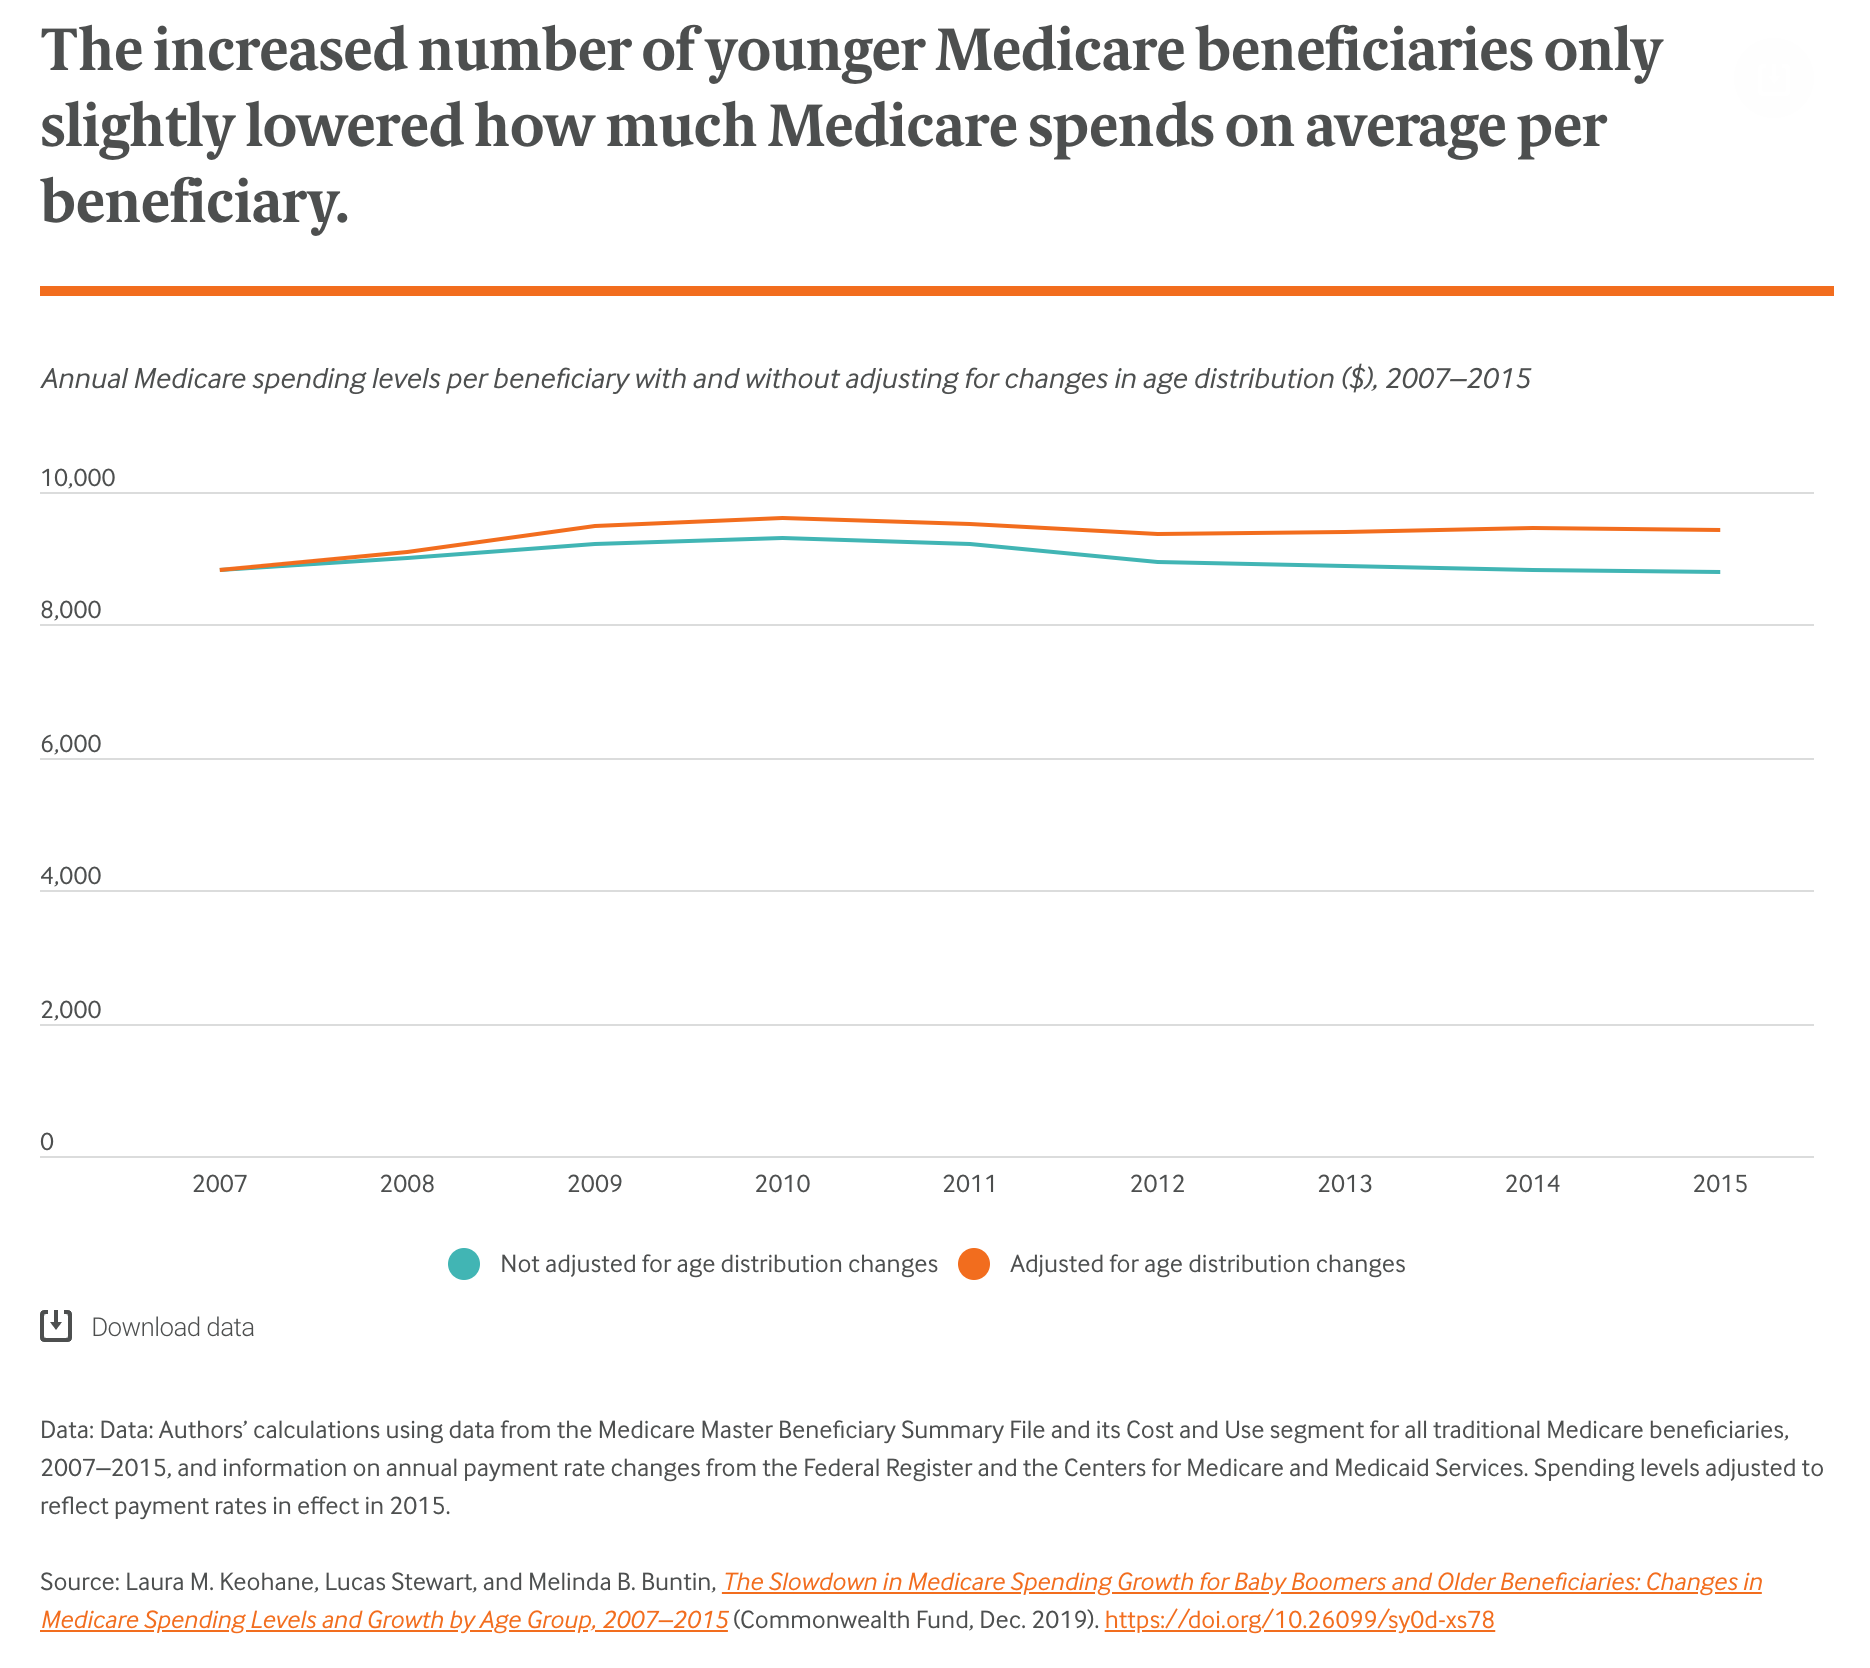 A chart illustrating the change in Medicare spending per beneficiary